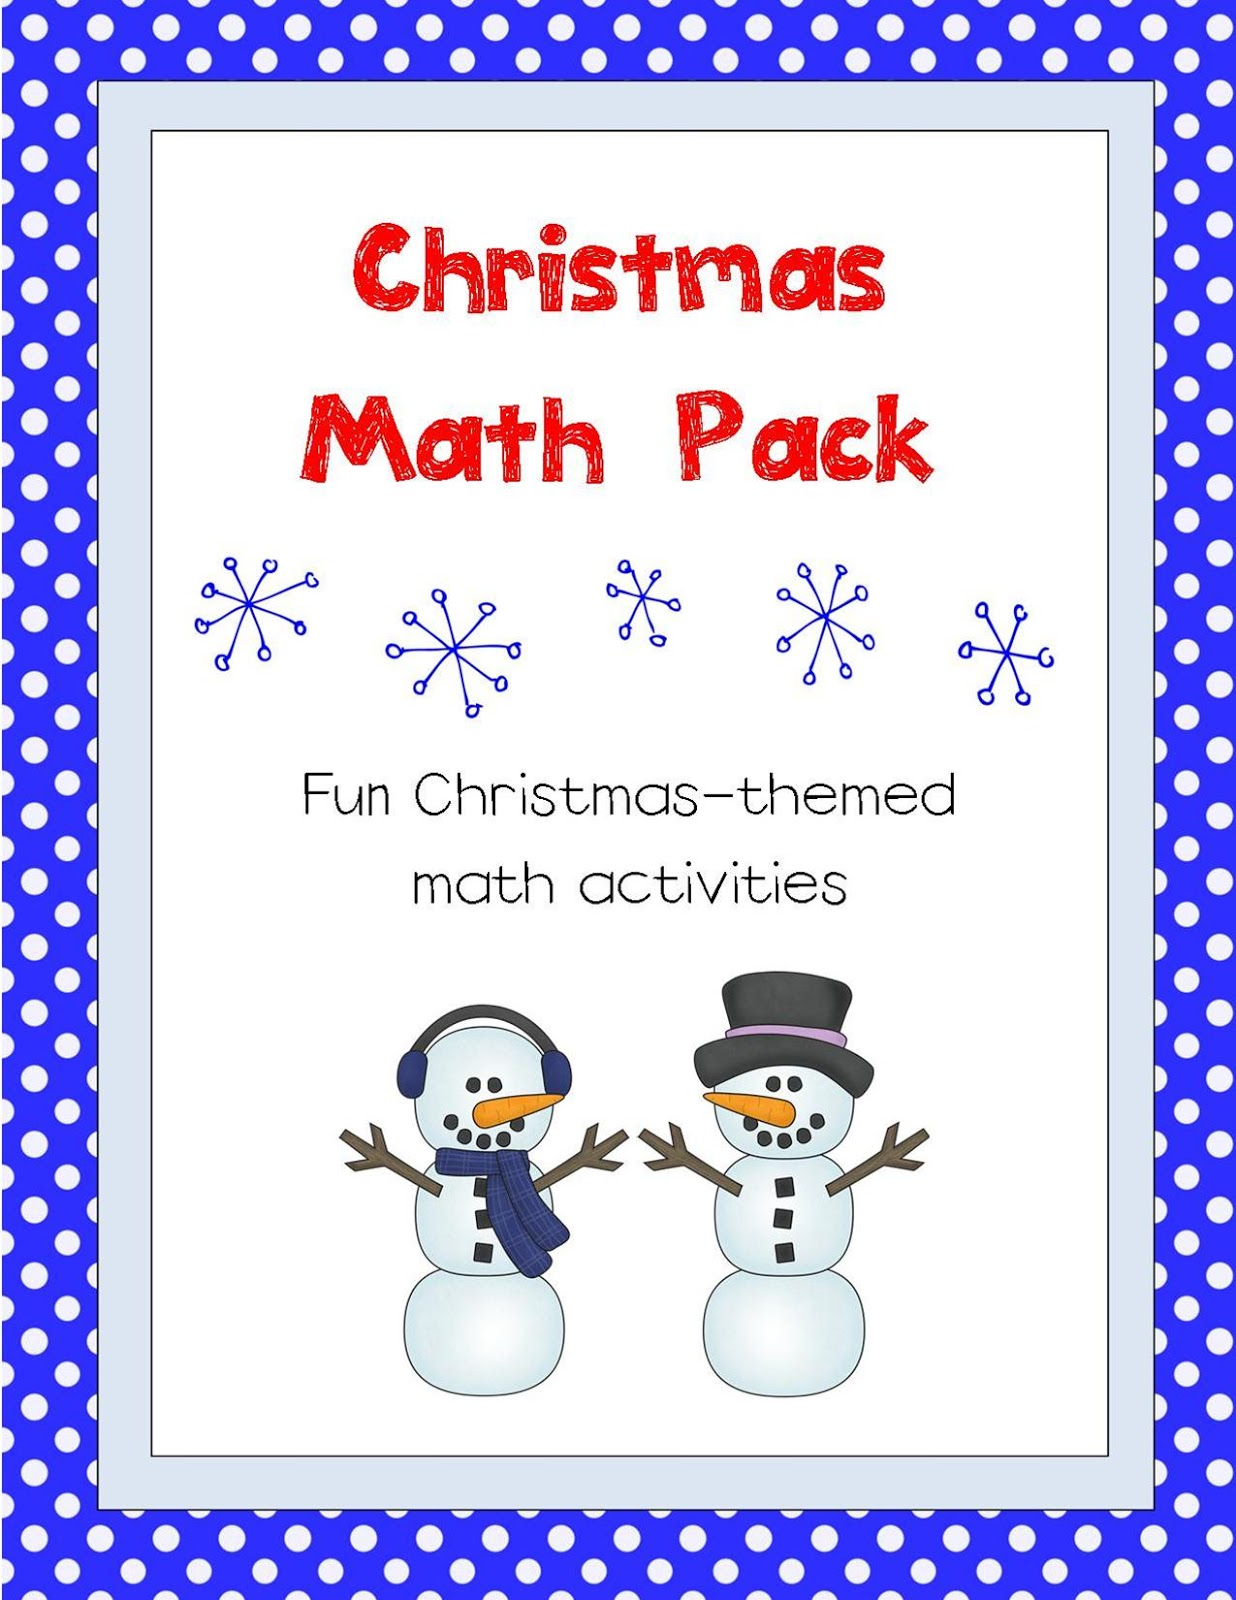 Worksheet and a countdown till christmas activity it can be purchased